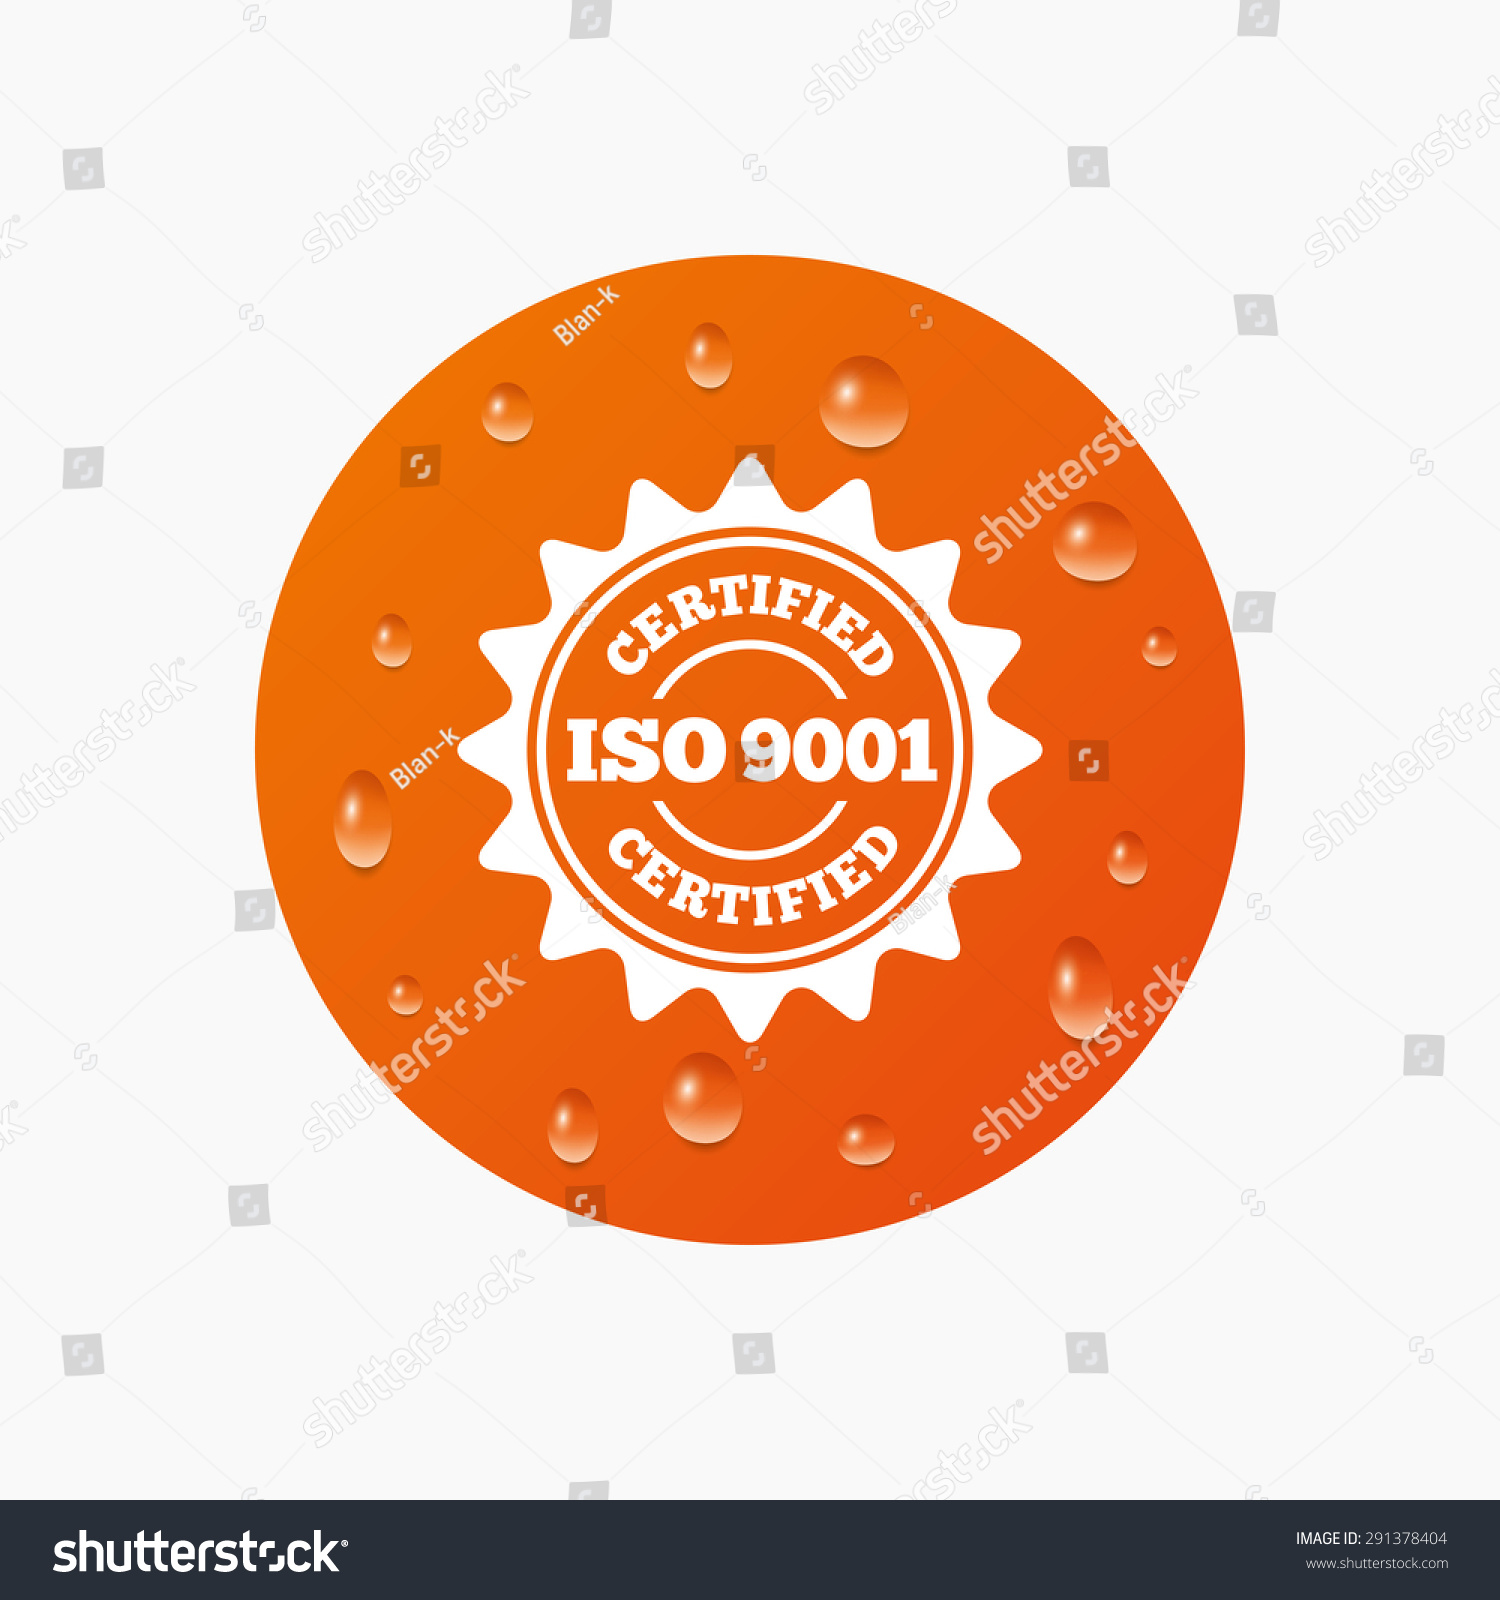 Water drops on button iso 9001 stock vector 291378404 shutterstock water drops on button iso 9001 certified sign icon certification star stamp realistic 1betcityfo Images